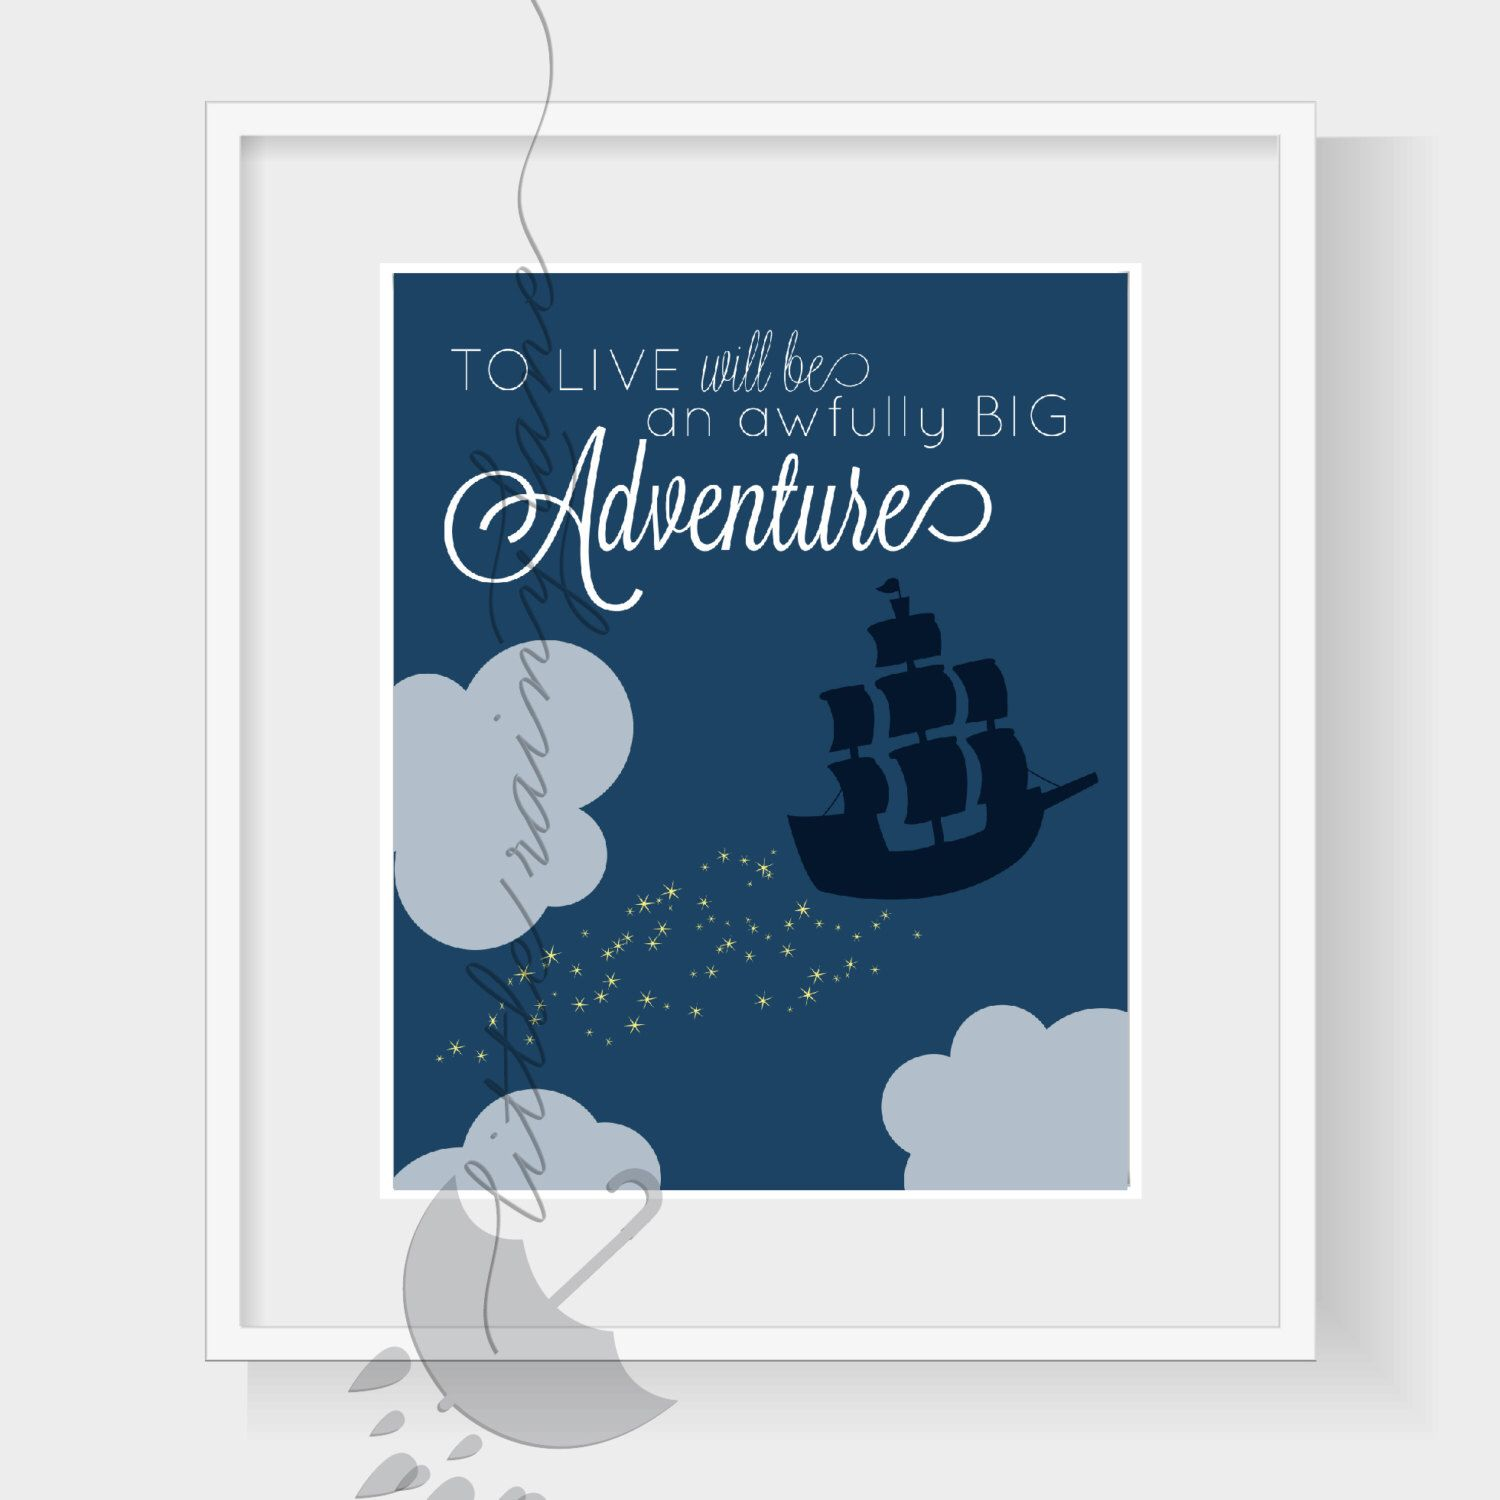 Peter Pan Nursery Print - To Live, Will be an Awfully BIG Adventure by LittleRainyLane on Etsy https://www.etsy.com/listing/156961025/peter-pan-nursery-print-to-live-will-be